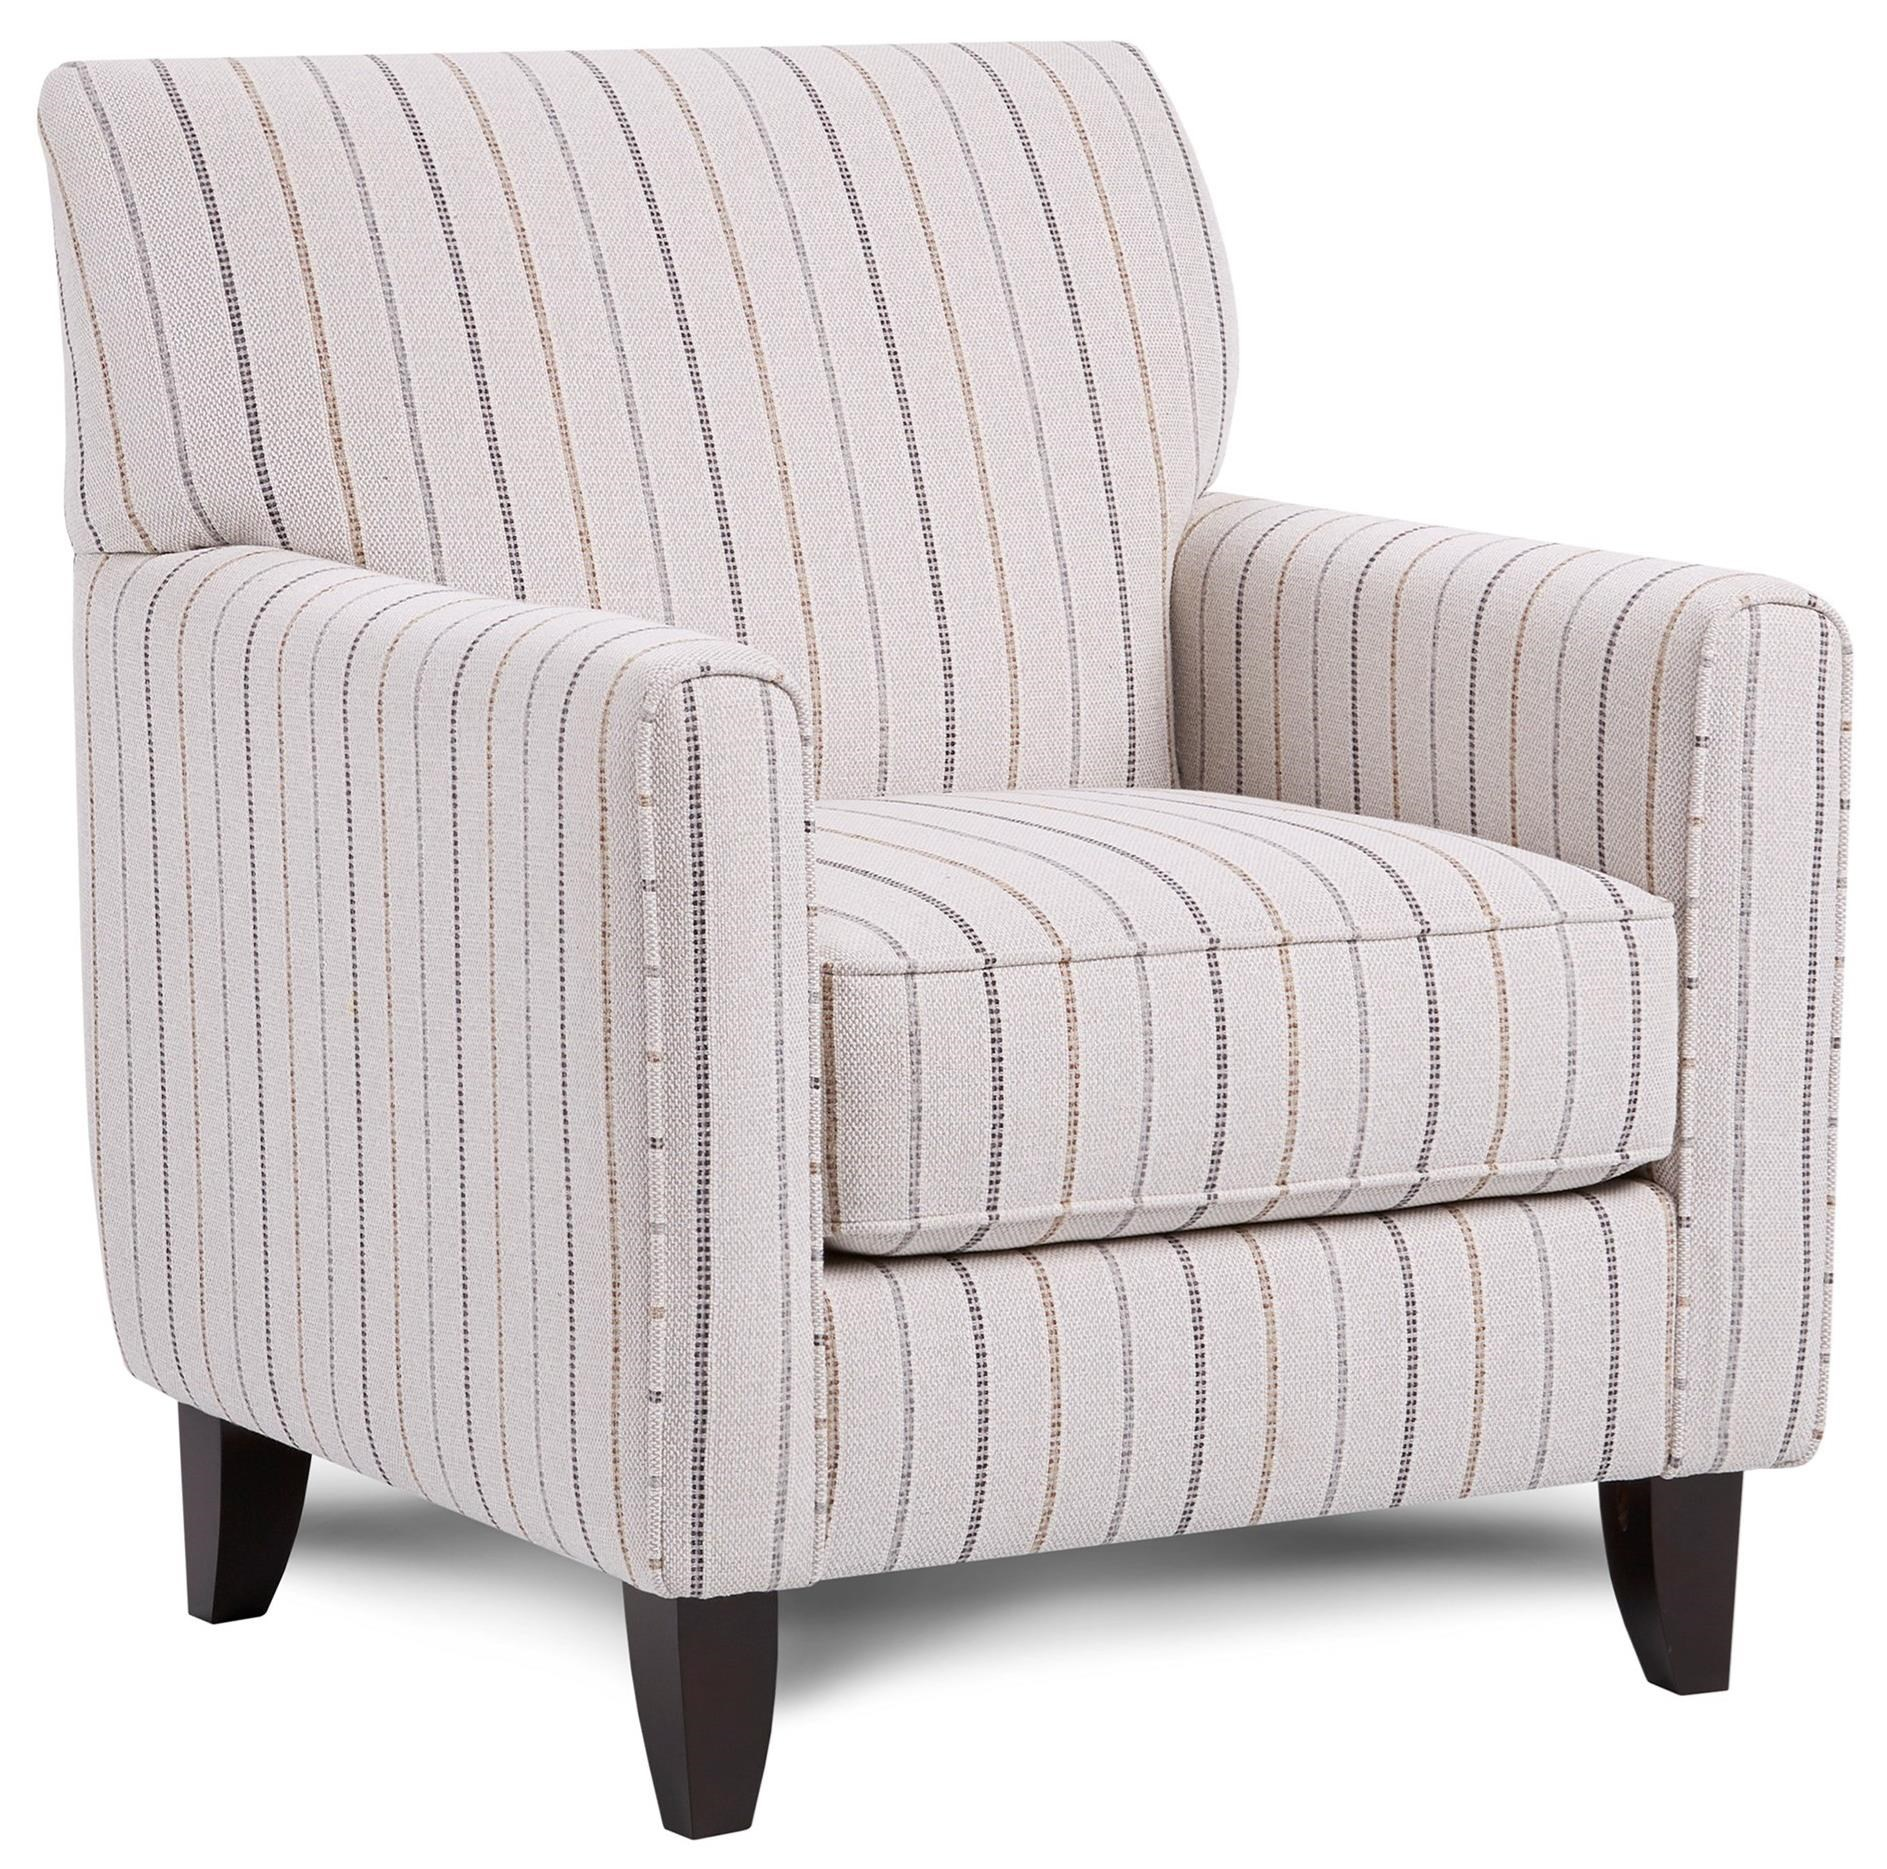 702 Accent Chair by Kent Home Furnishings at Johnny Janosik